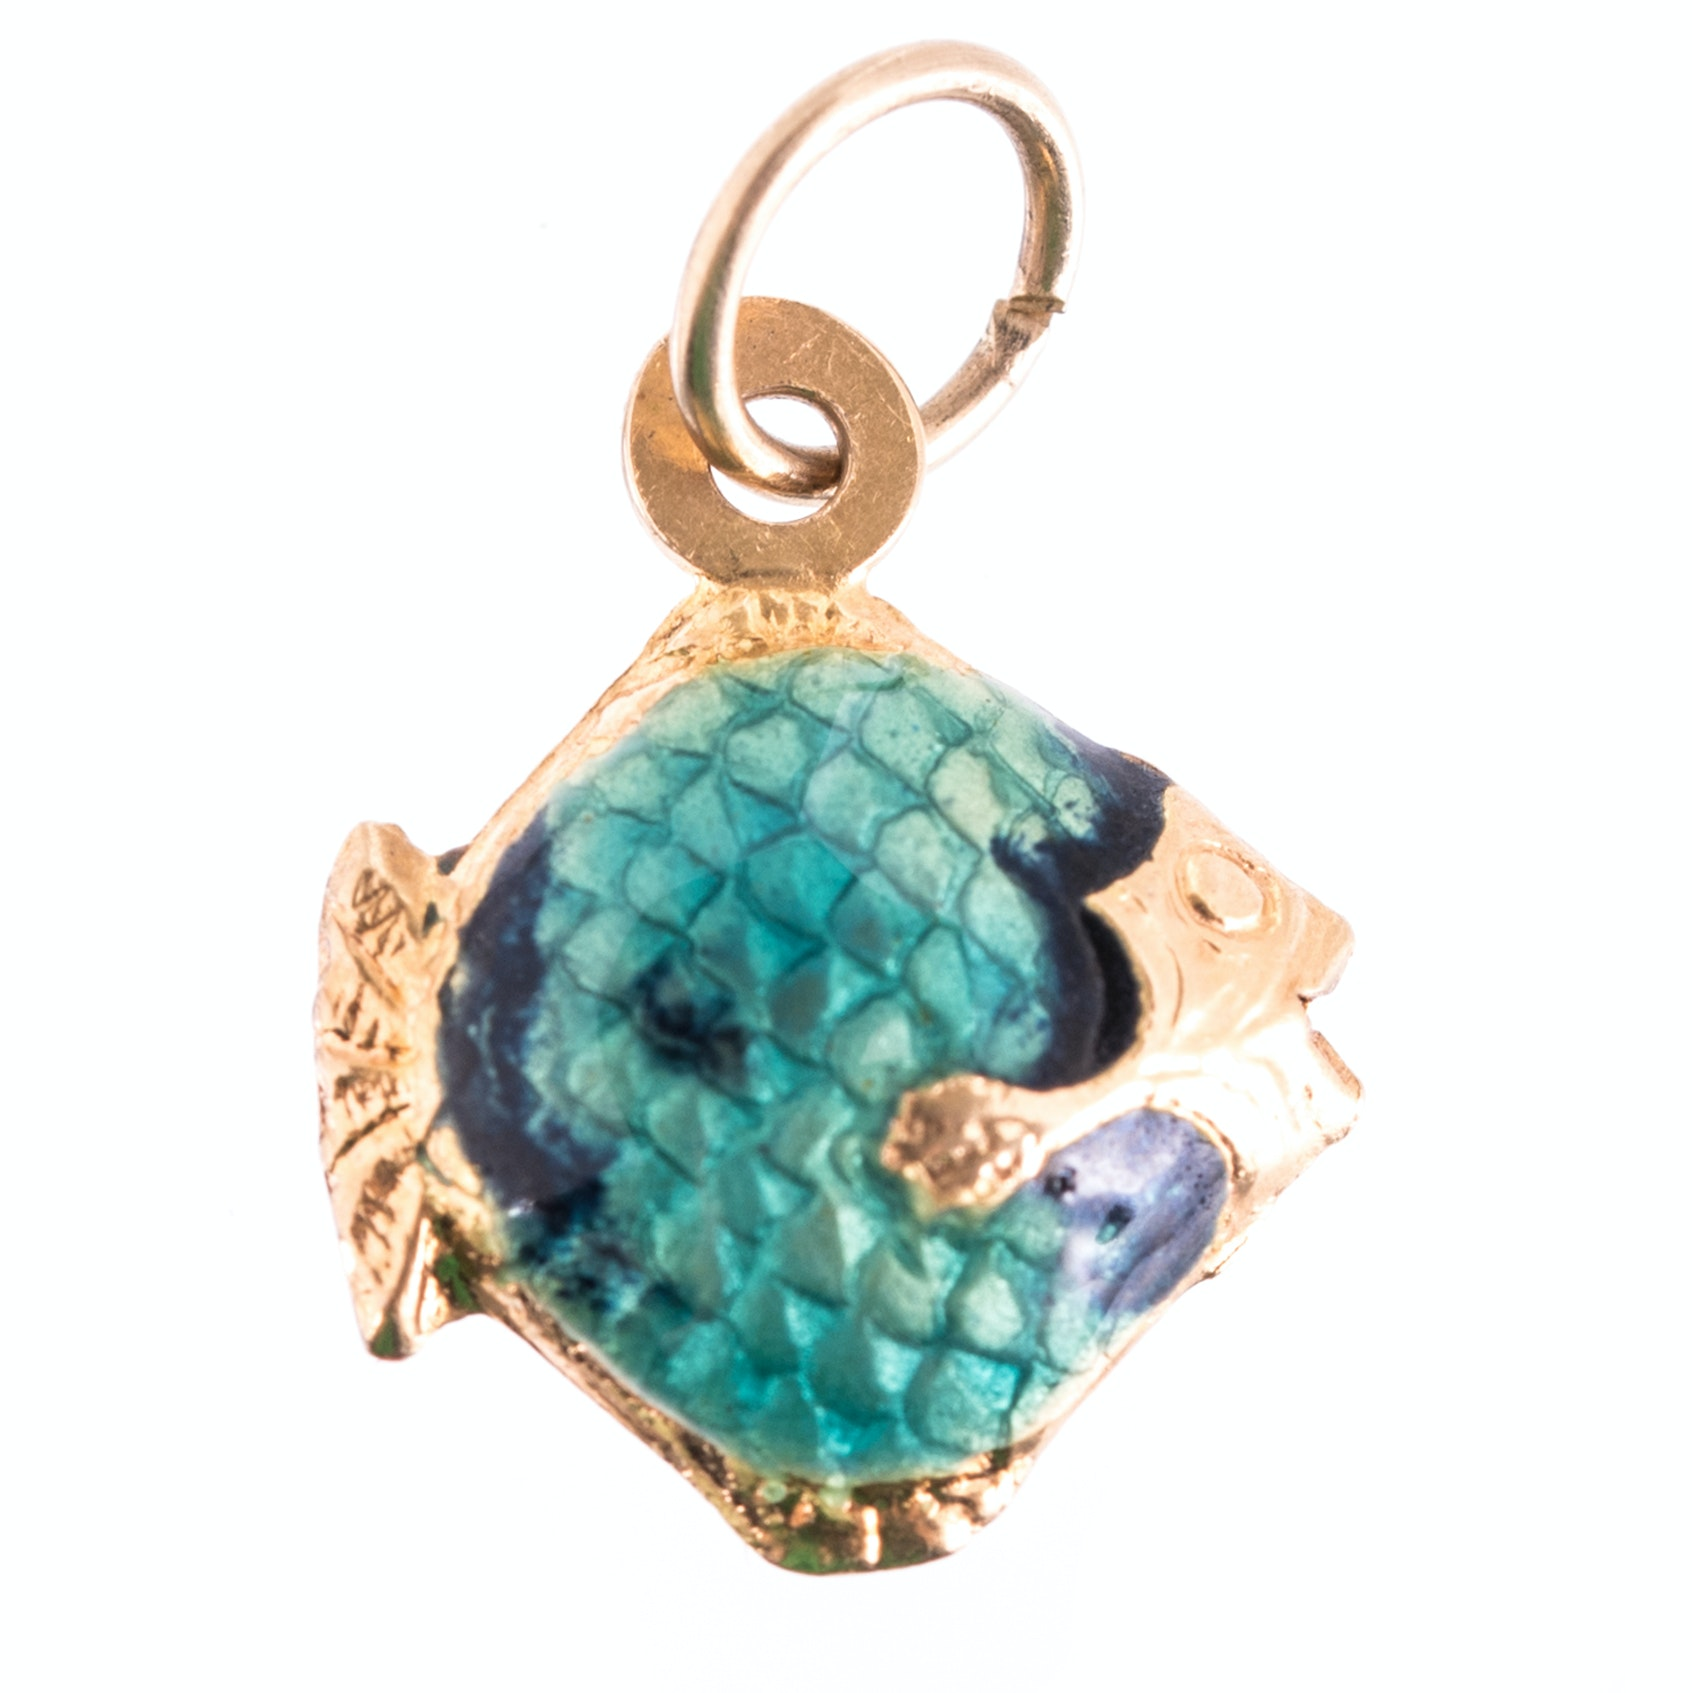 18K Yellow Gold Enameled Fish Charm